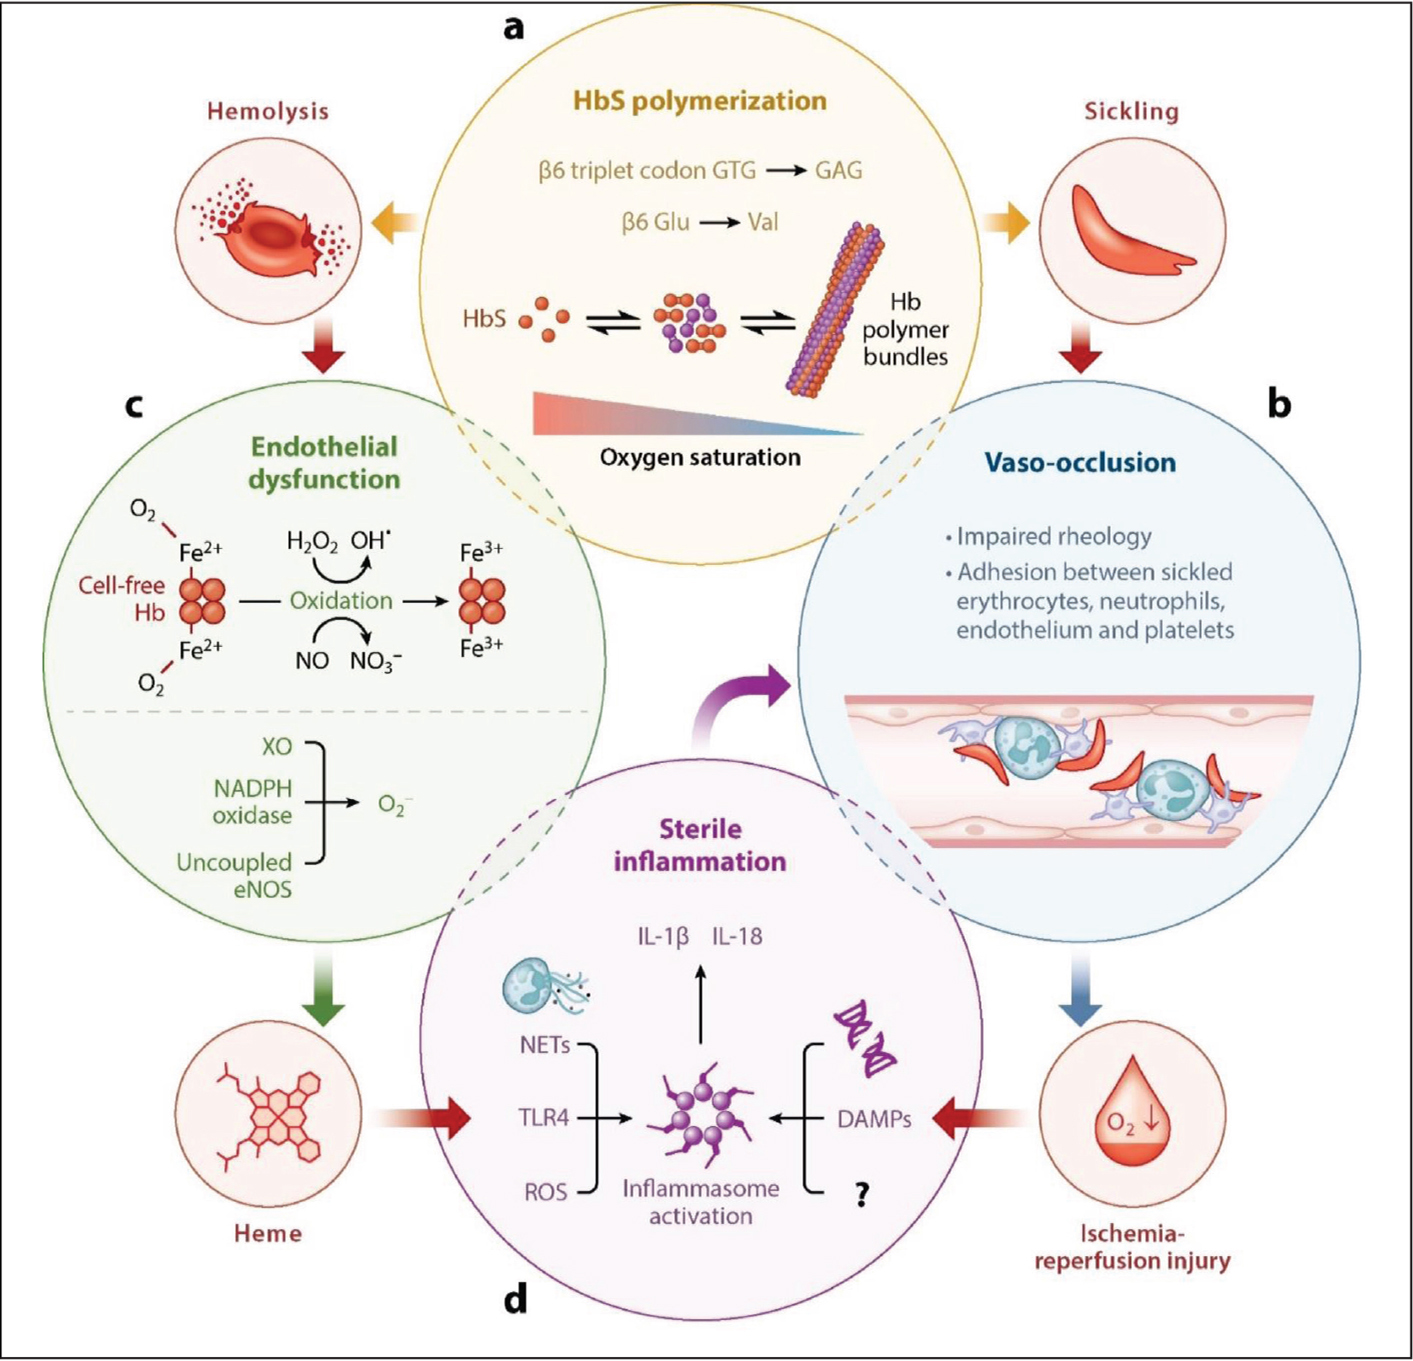 The molecular pathophysiology of sickle cell disease. Reprinted with permision from Sundd et al.23